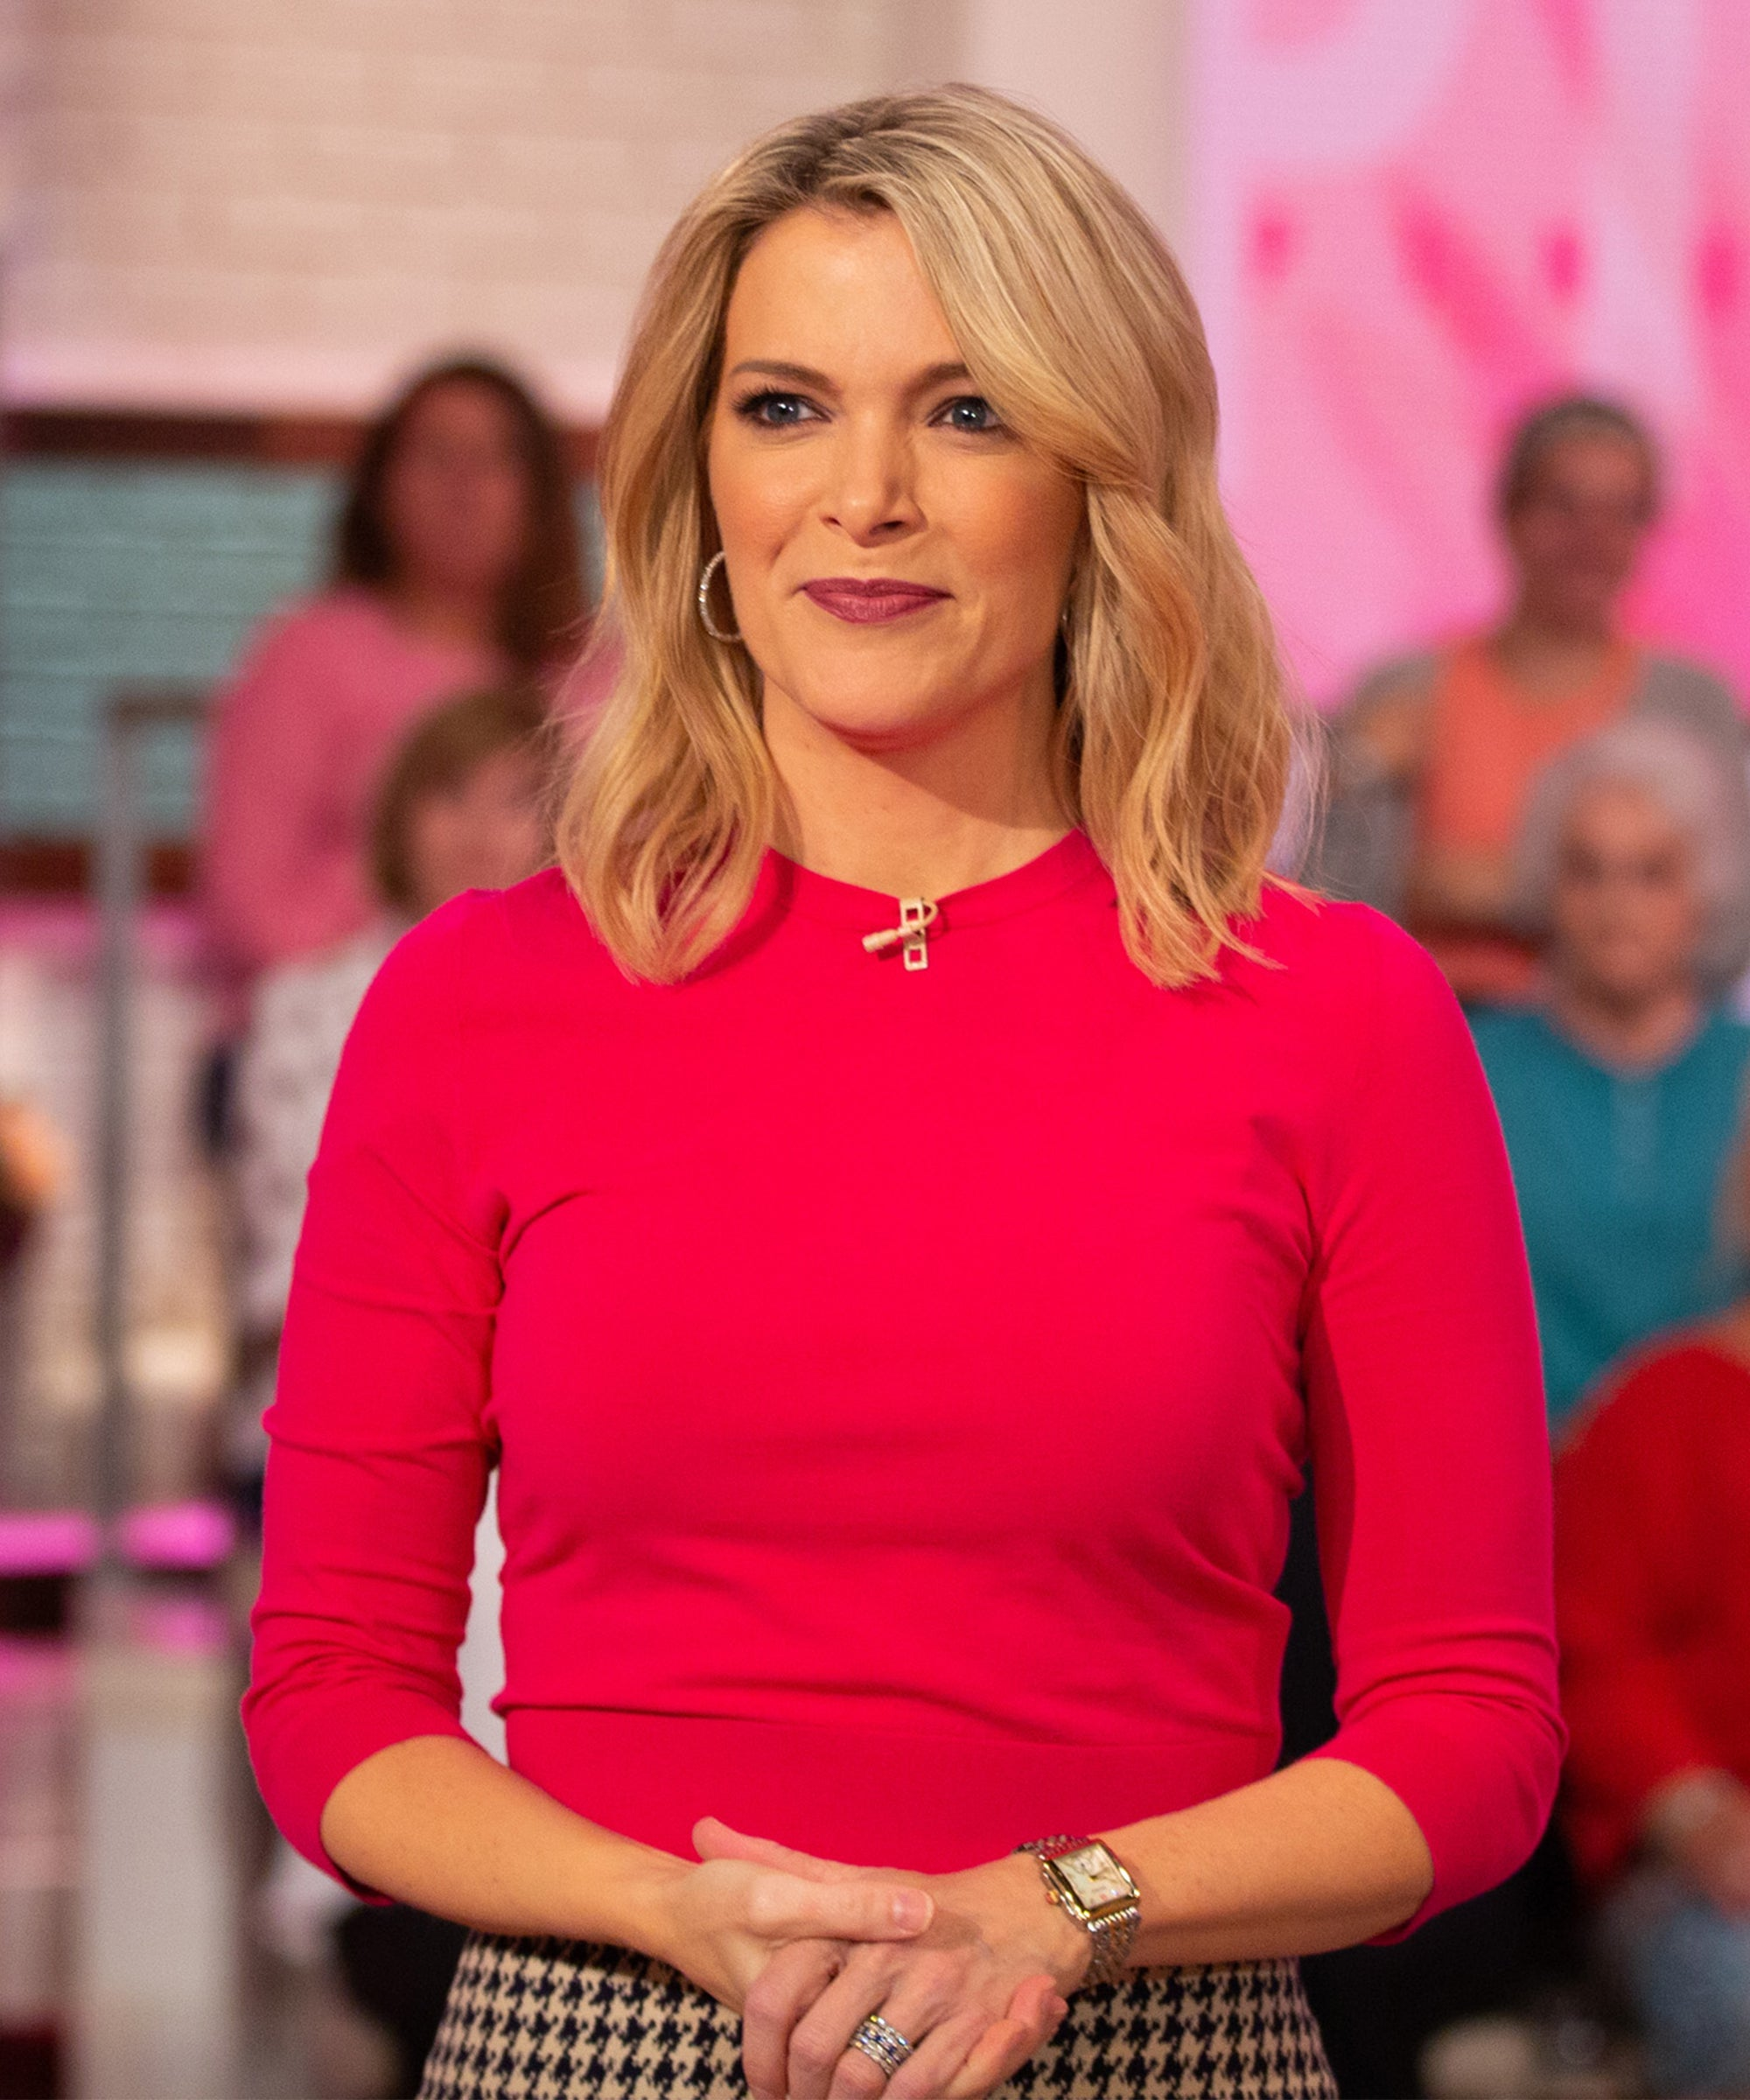 Bombshell Shows Megyn Kelly At Her Professional Peak, But What Has She Been Doing All Year?